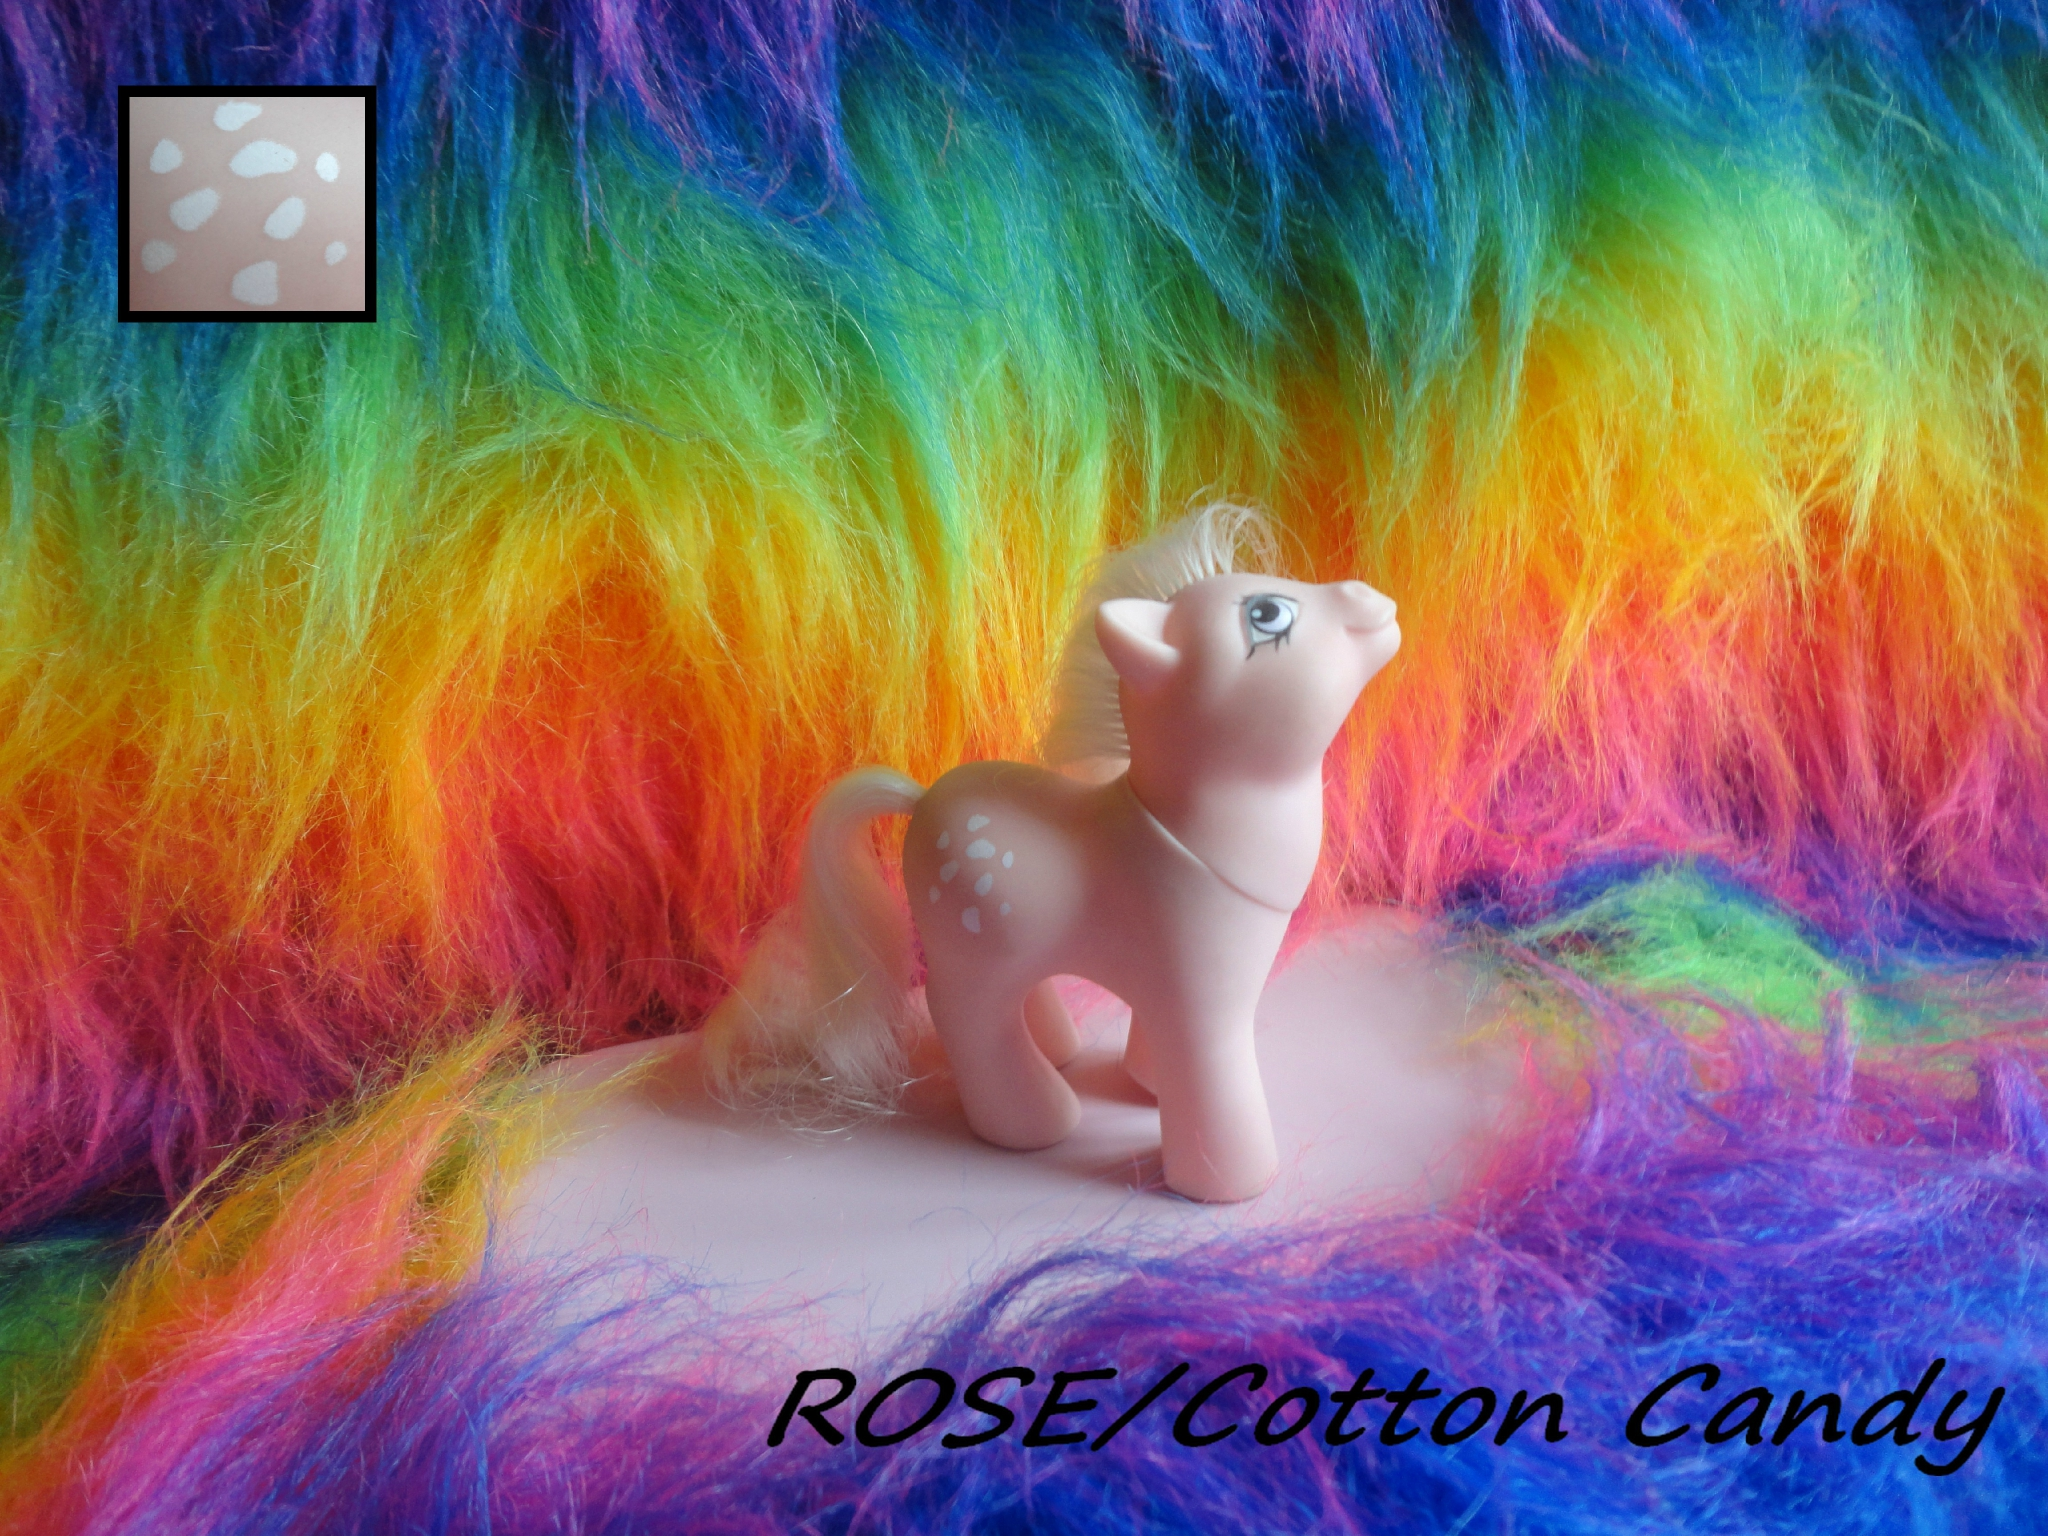 ROSE (Baby Cotton Candy)